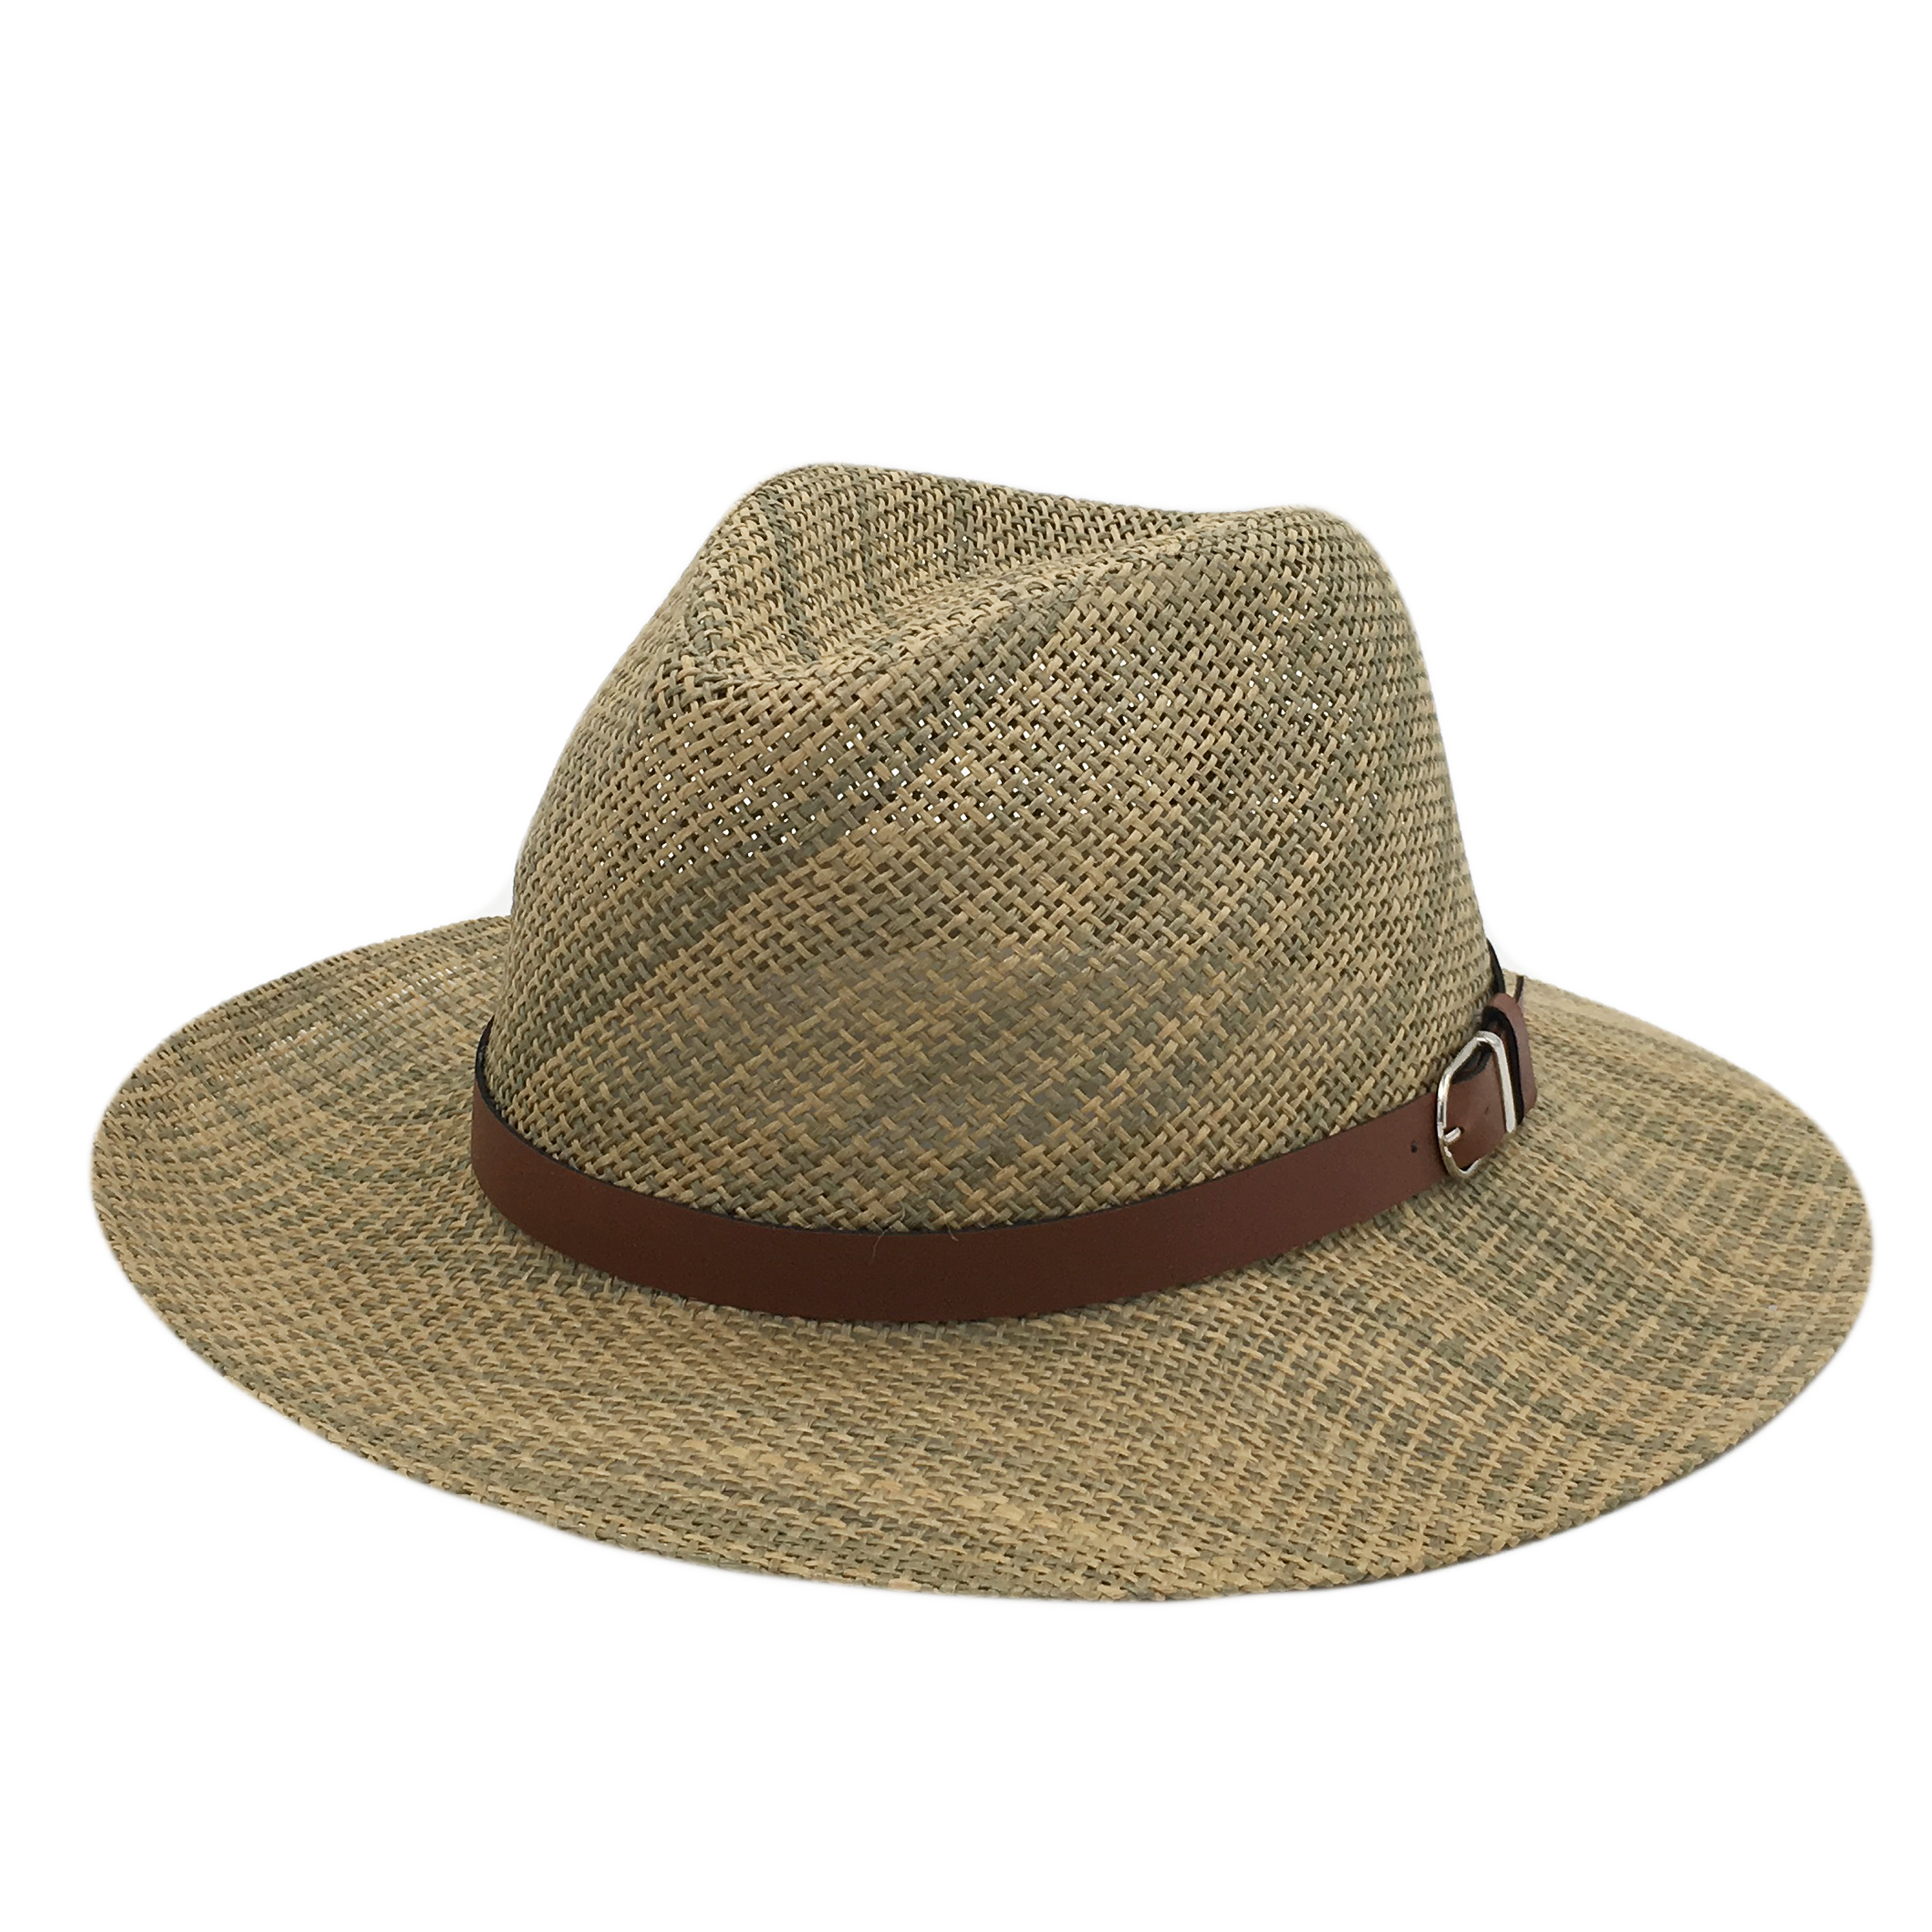 Copy of Copy of Custom PVC Leather Strip Straw Hat